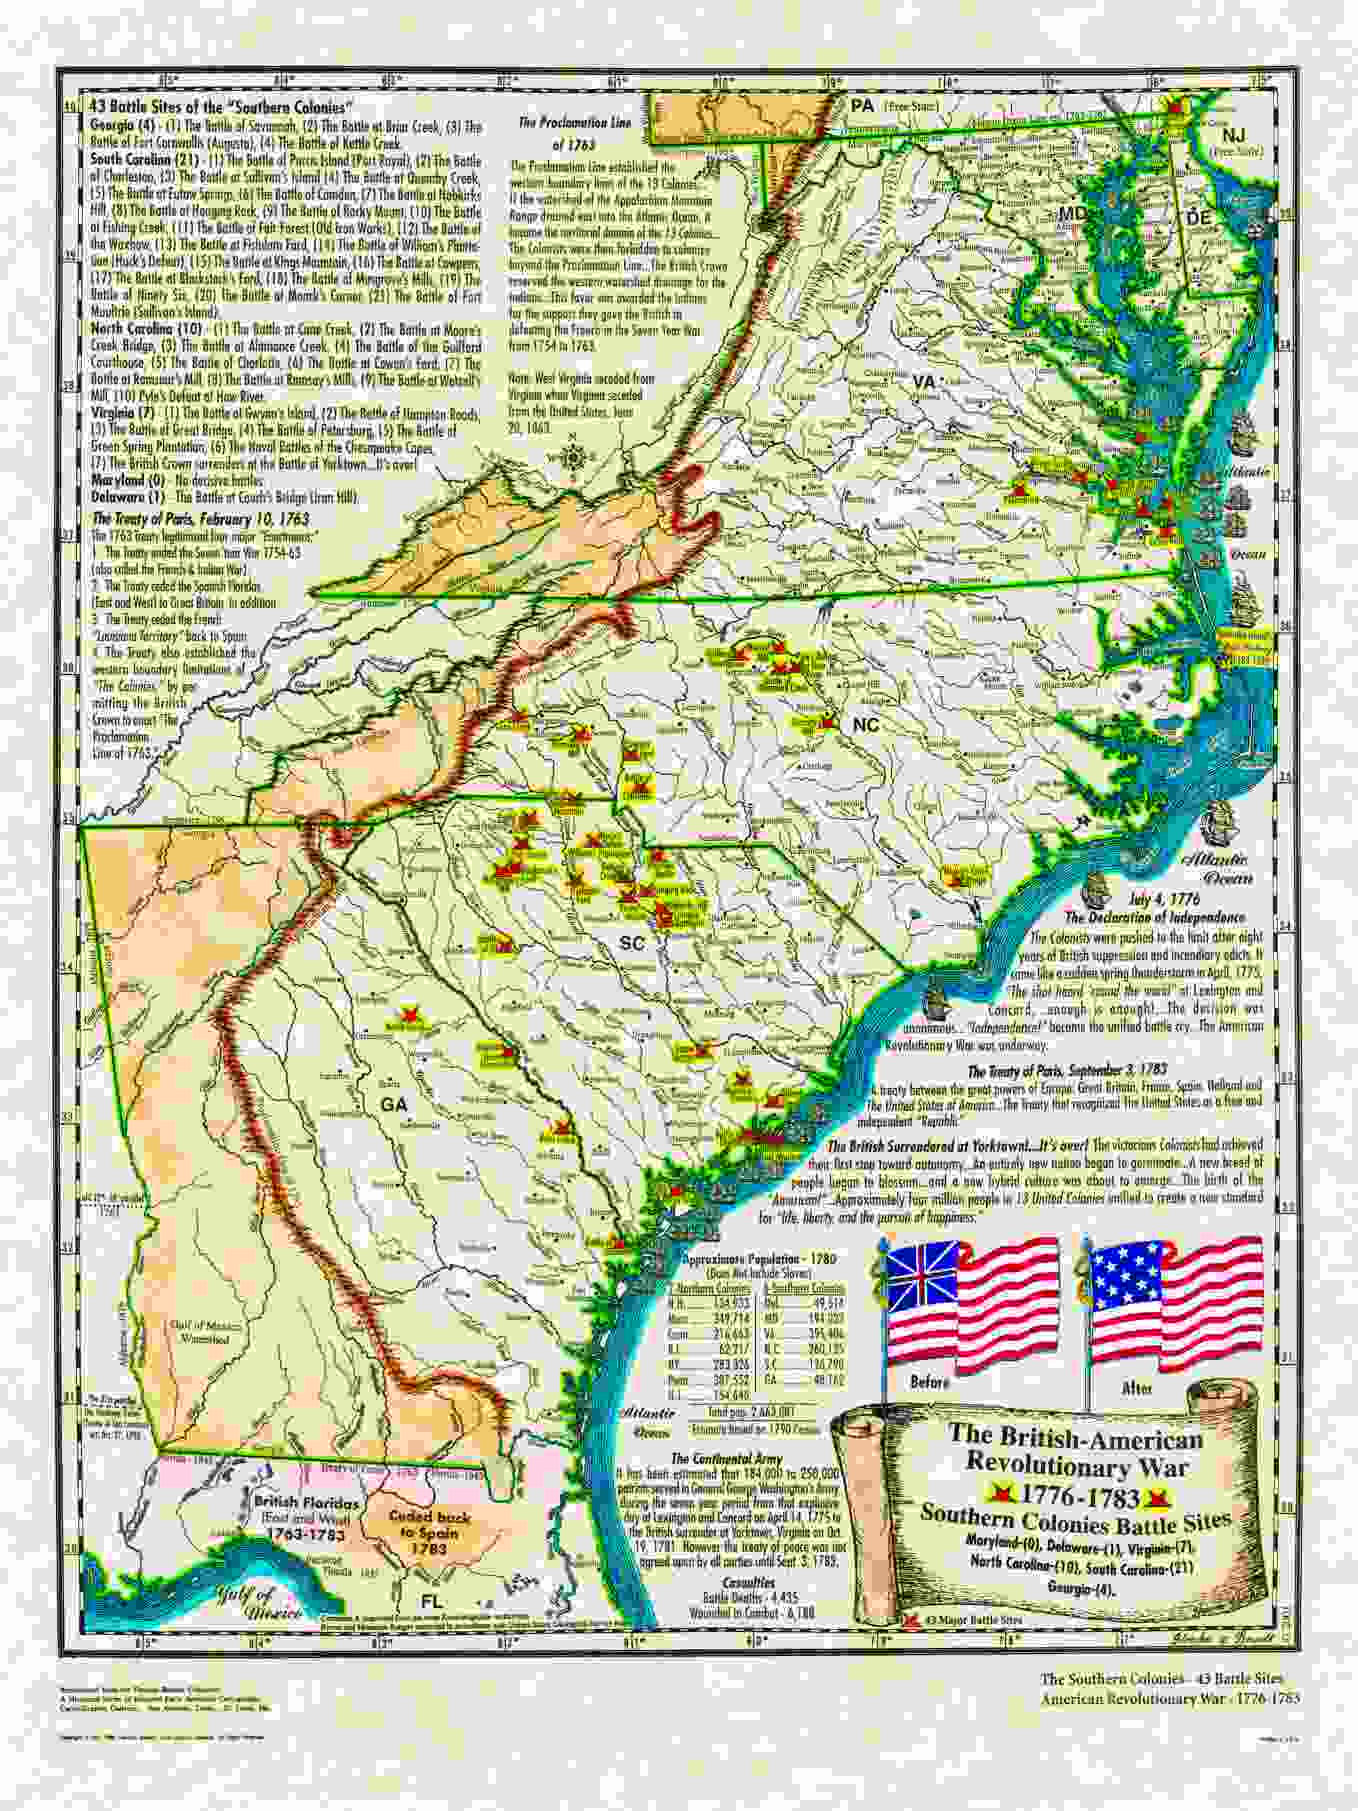 American Revolution Battles Sites South Colonies